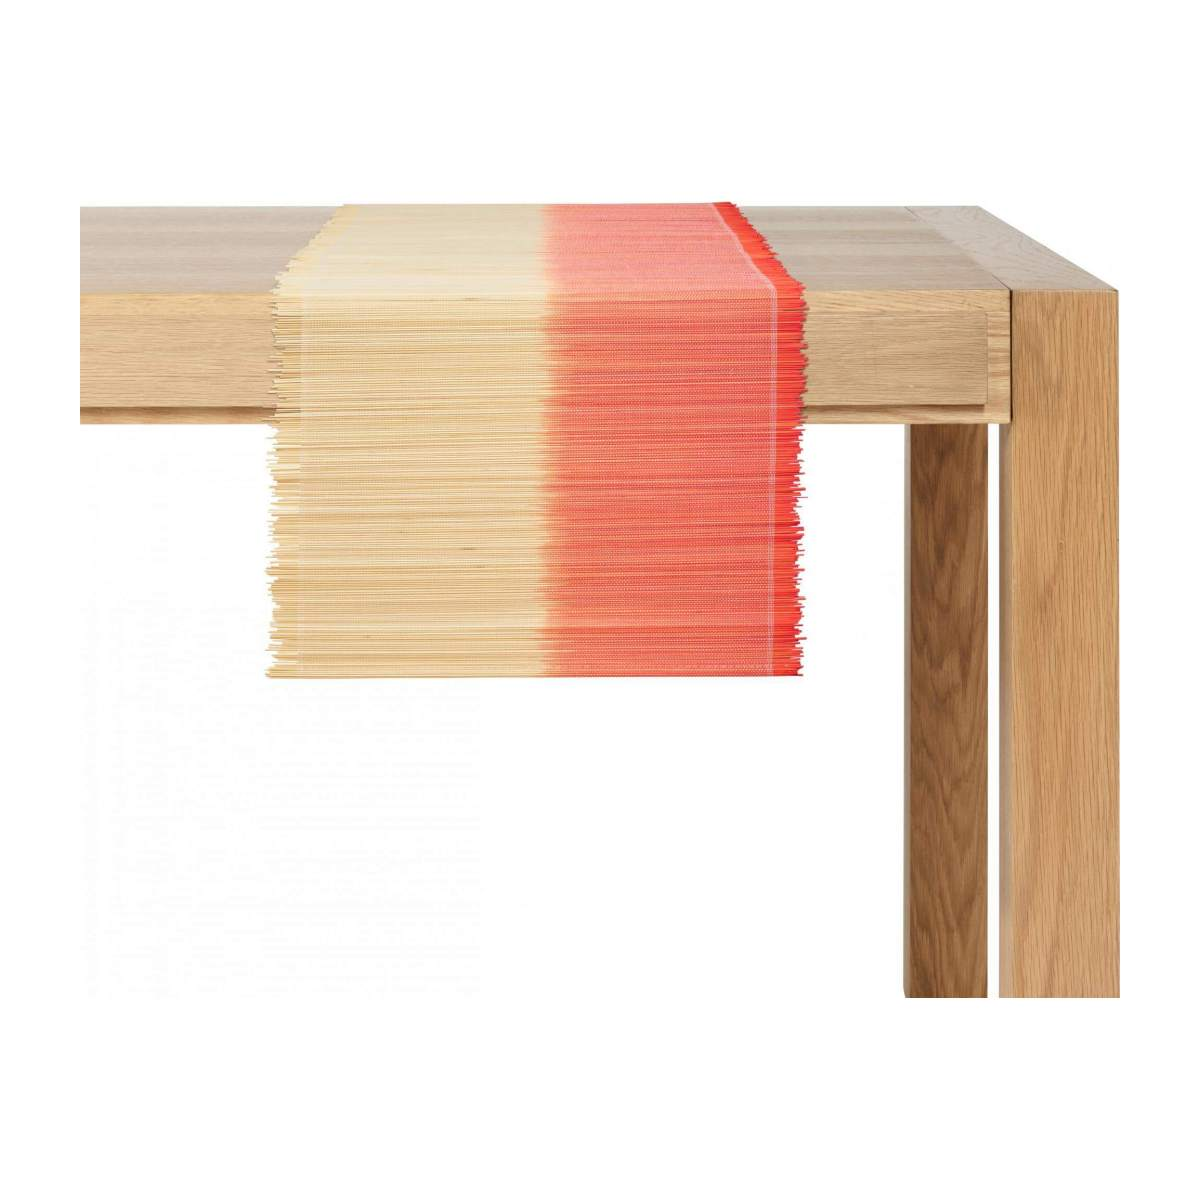 Travers de table en bambou - 40 x 150 cm - Rouge et naturel n°2